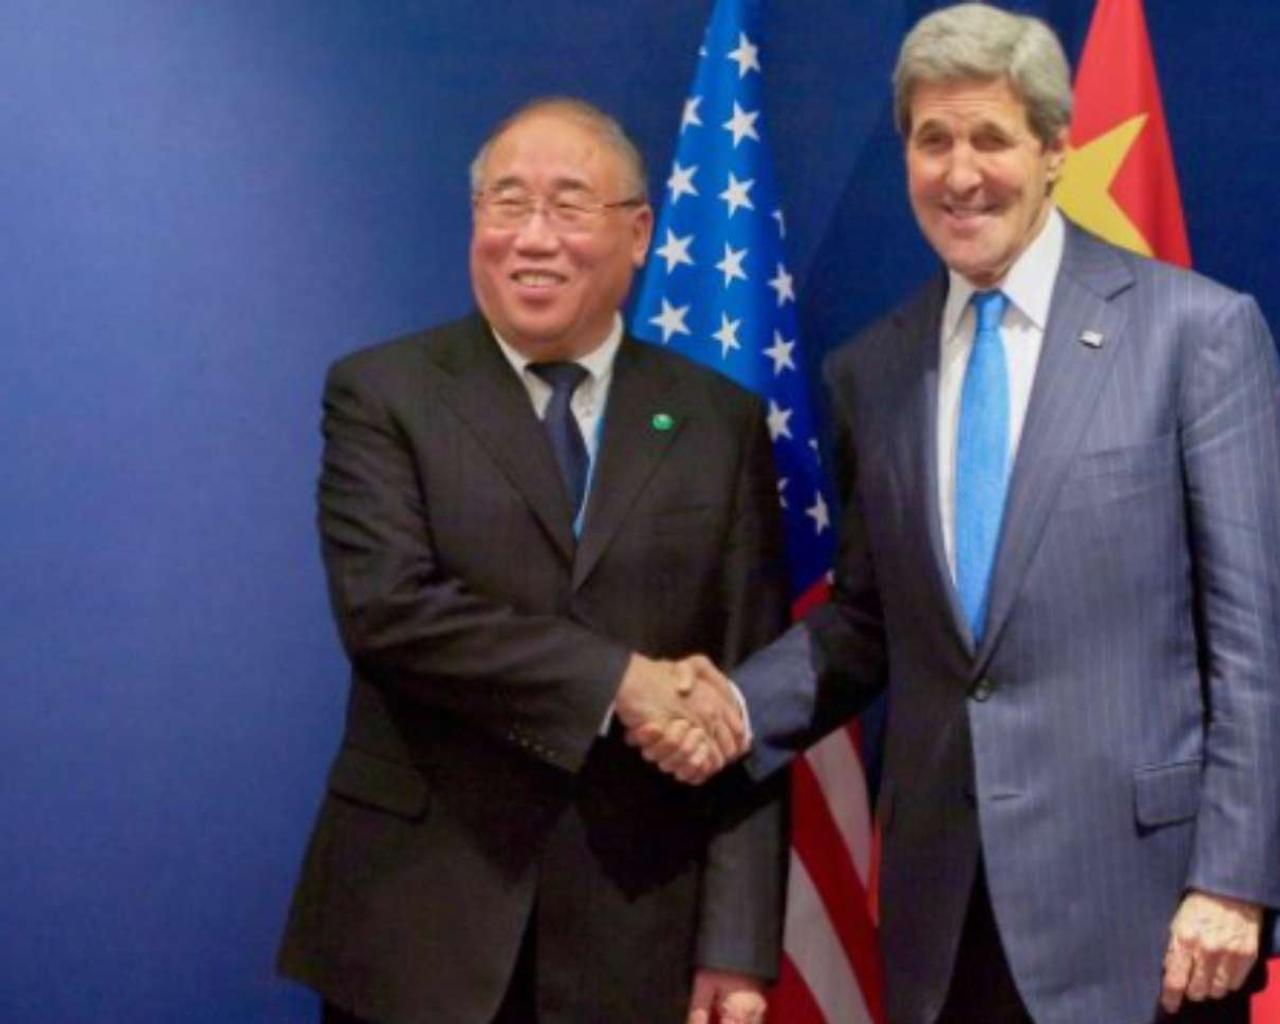 John Kerry, Biden's government envoy, started his China climate talks.